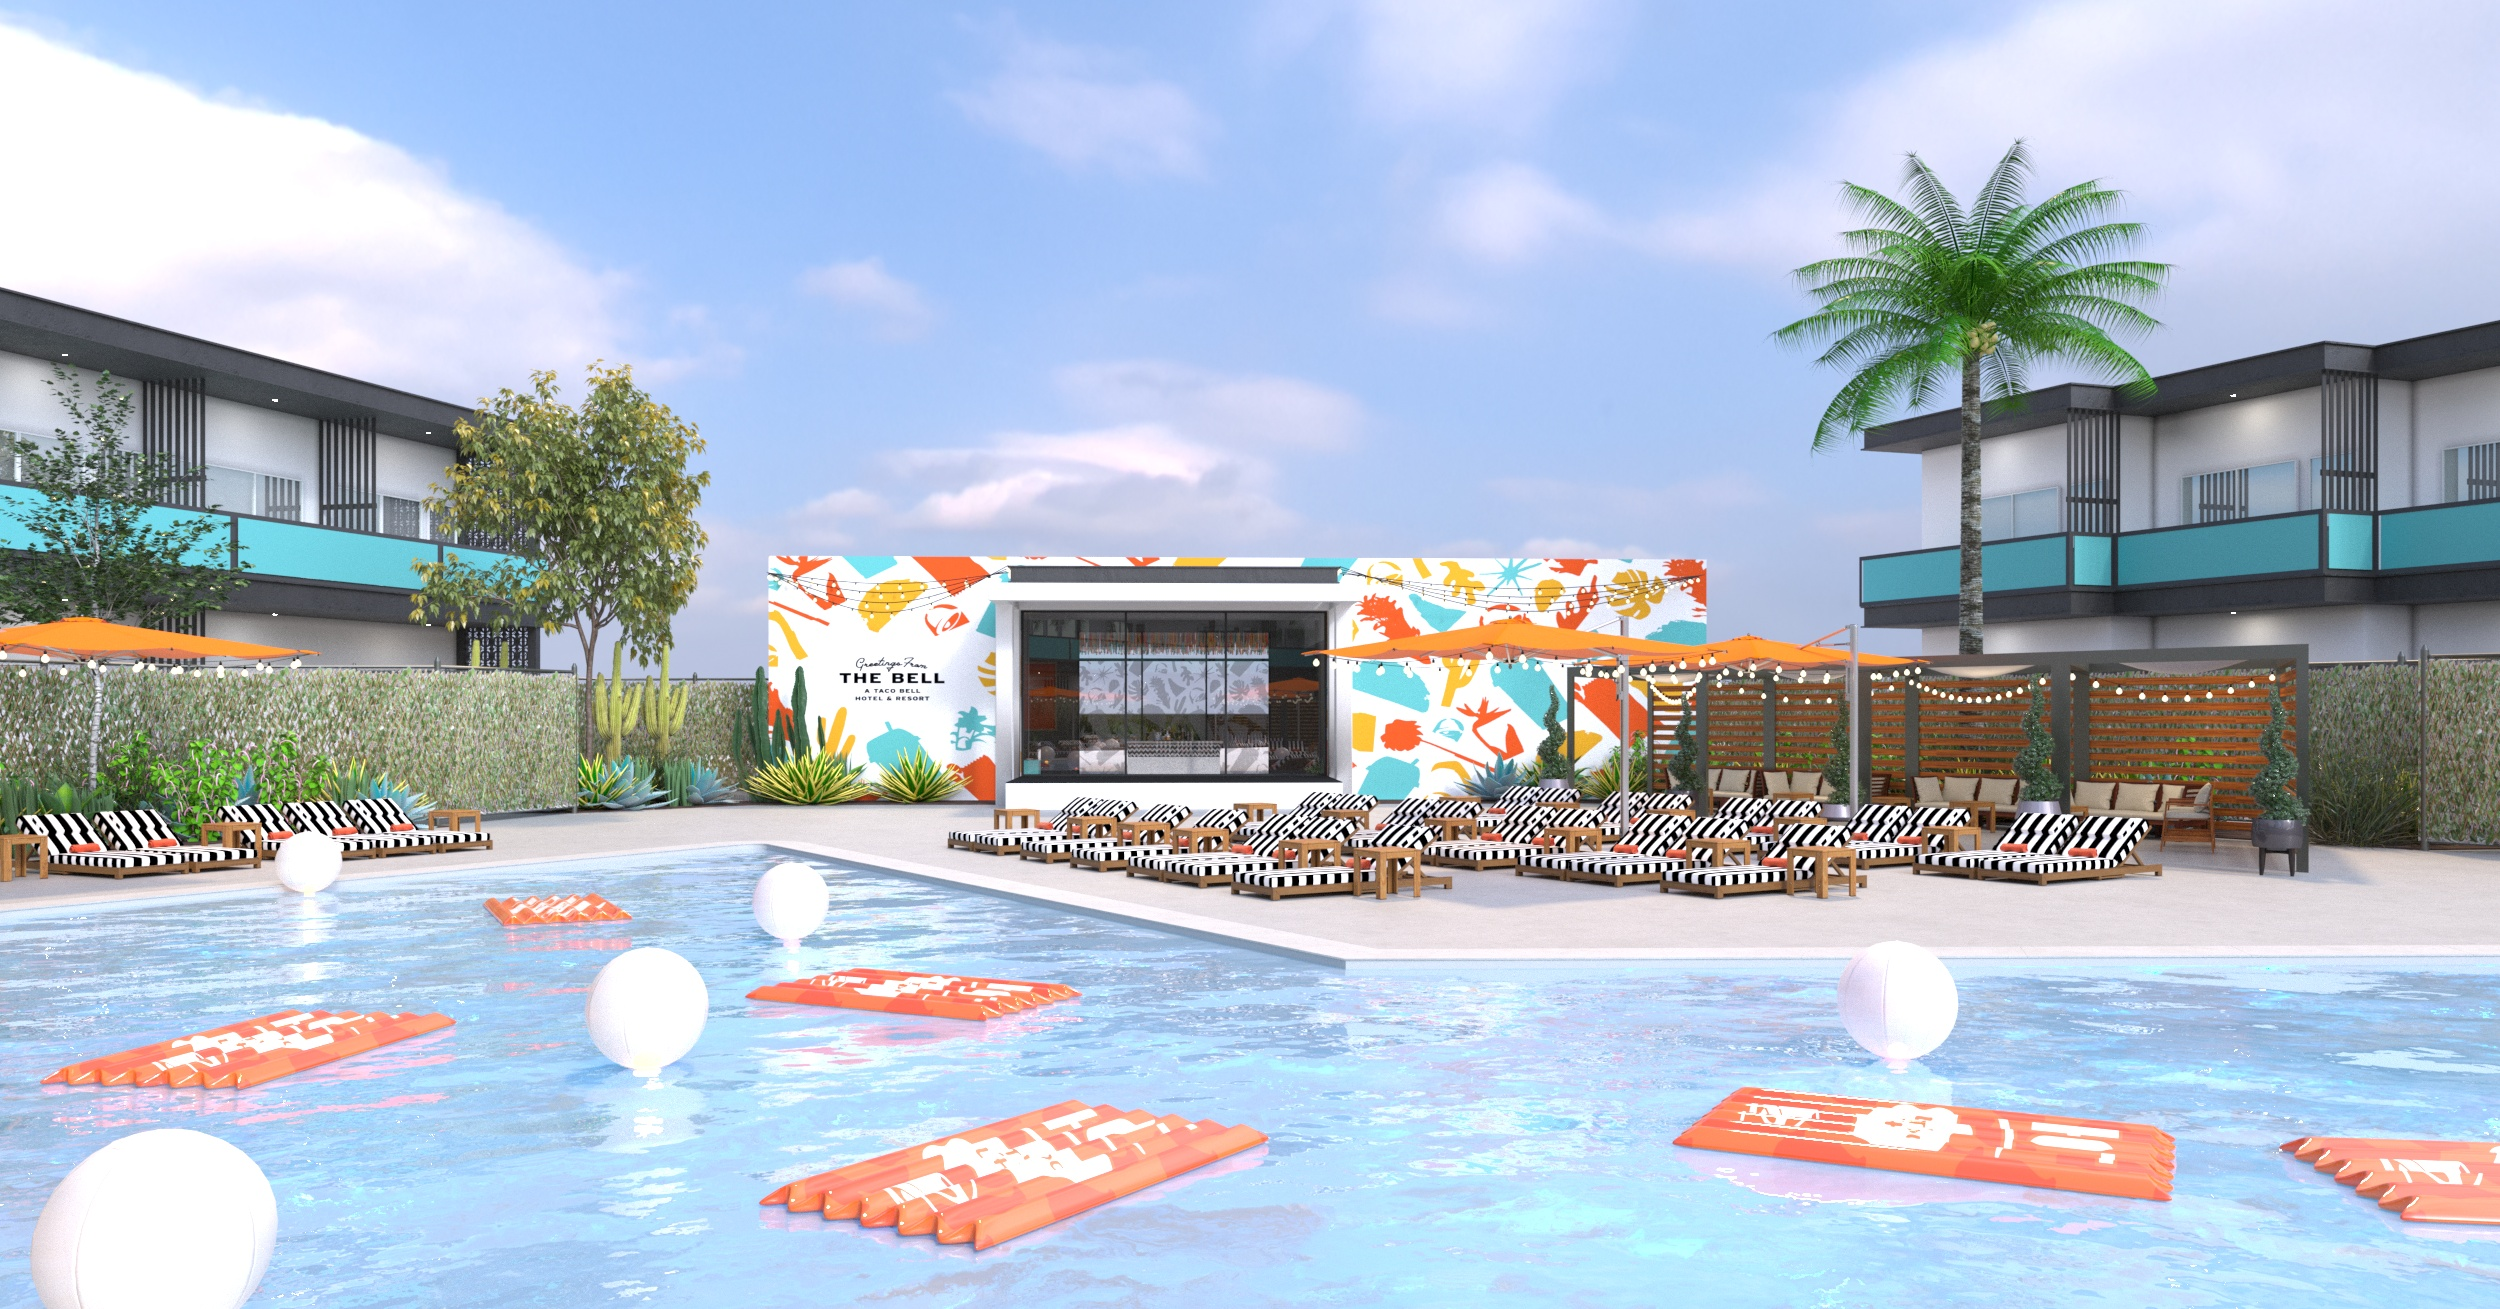 The Bell - A Taco Bell Hotel & Resort - Pool View